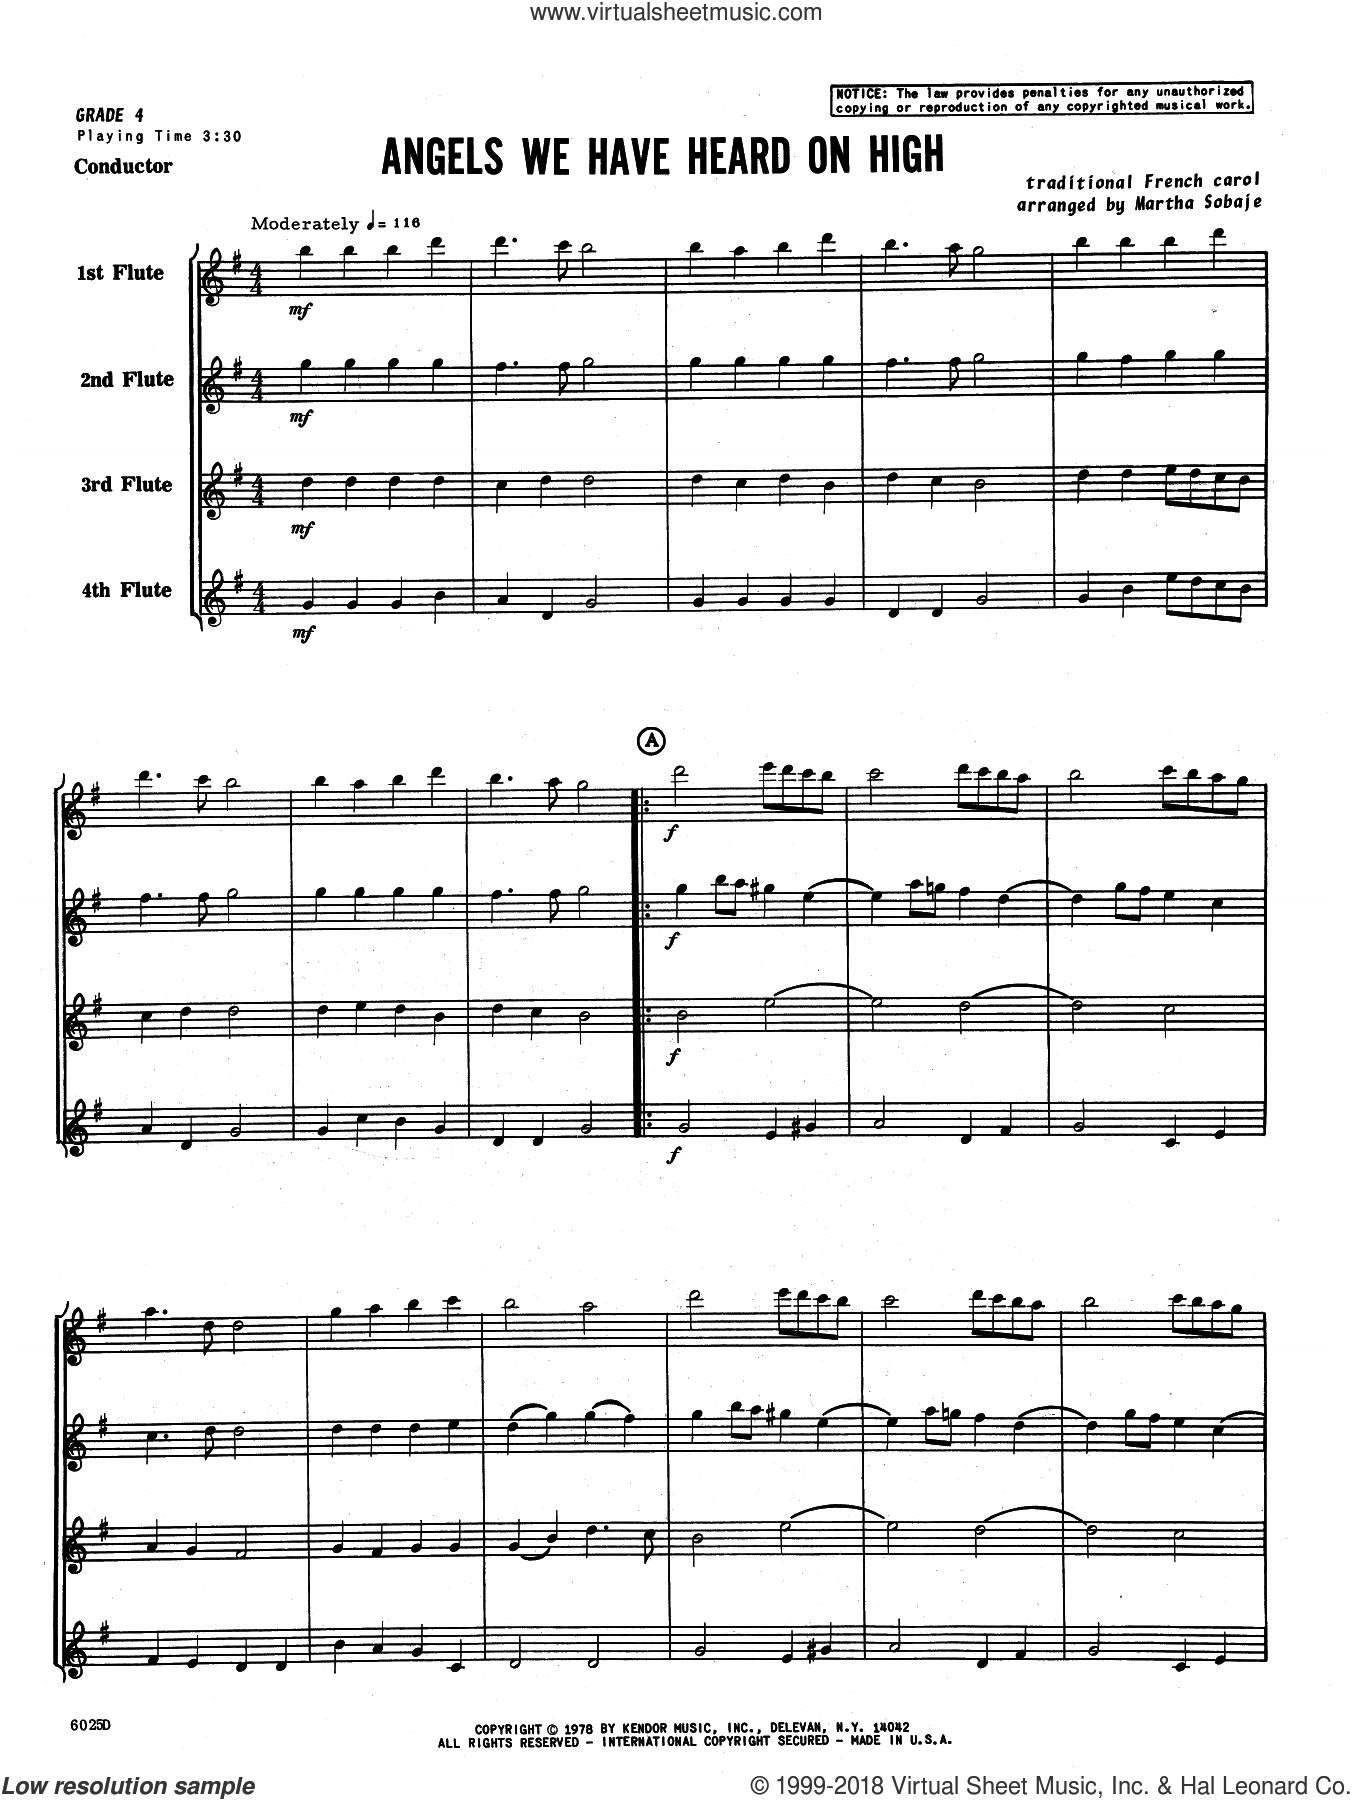 Angels We Have Heard on High (COMPLETE) sheet music for flute quartet by Sobaje, intermediate skill level